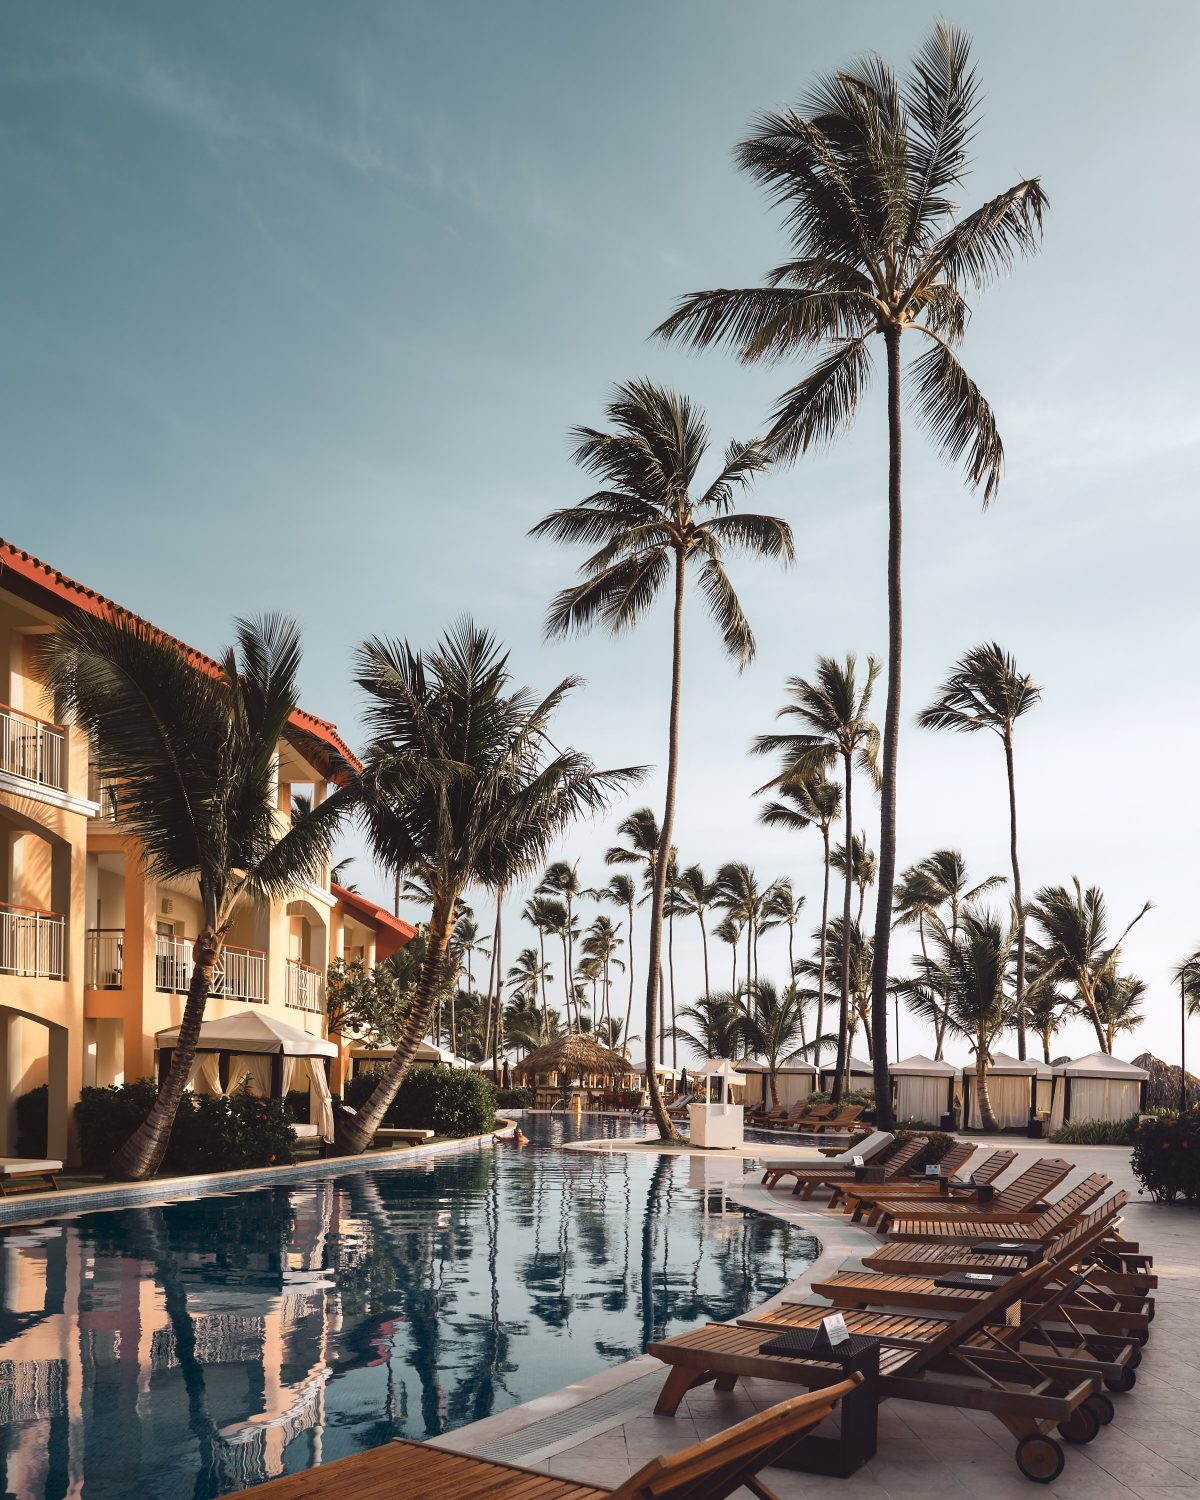 Punta Cana Resort with palm trees